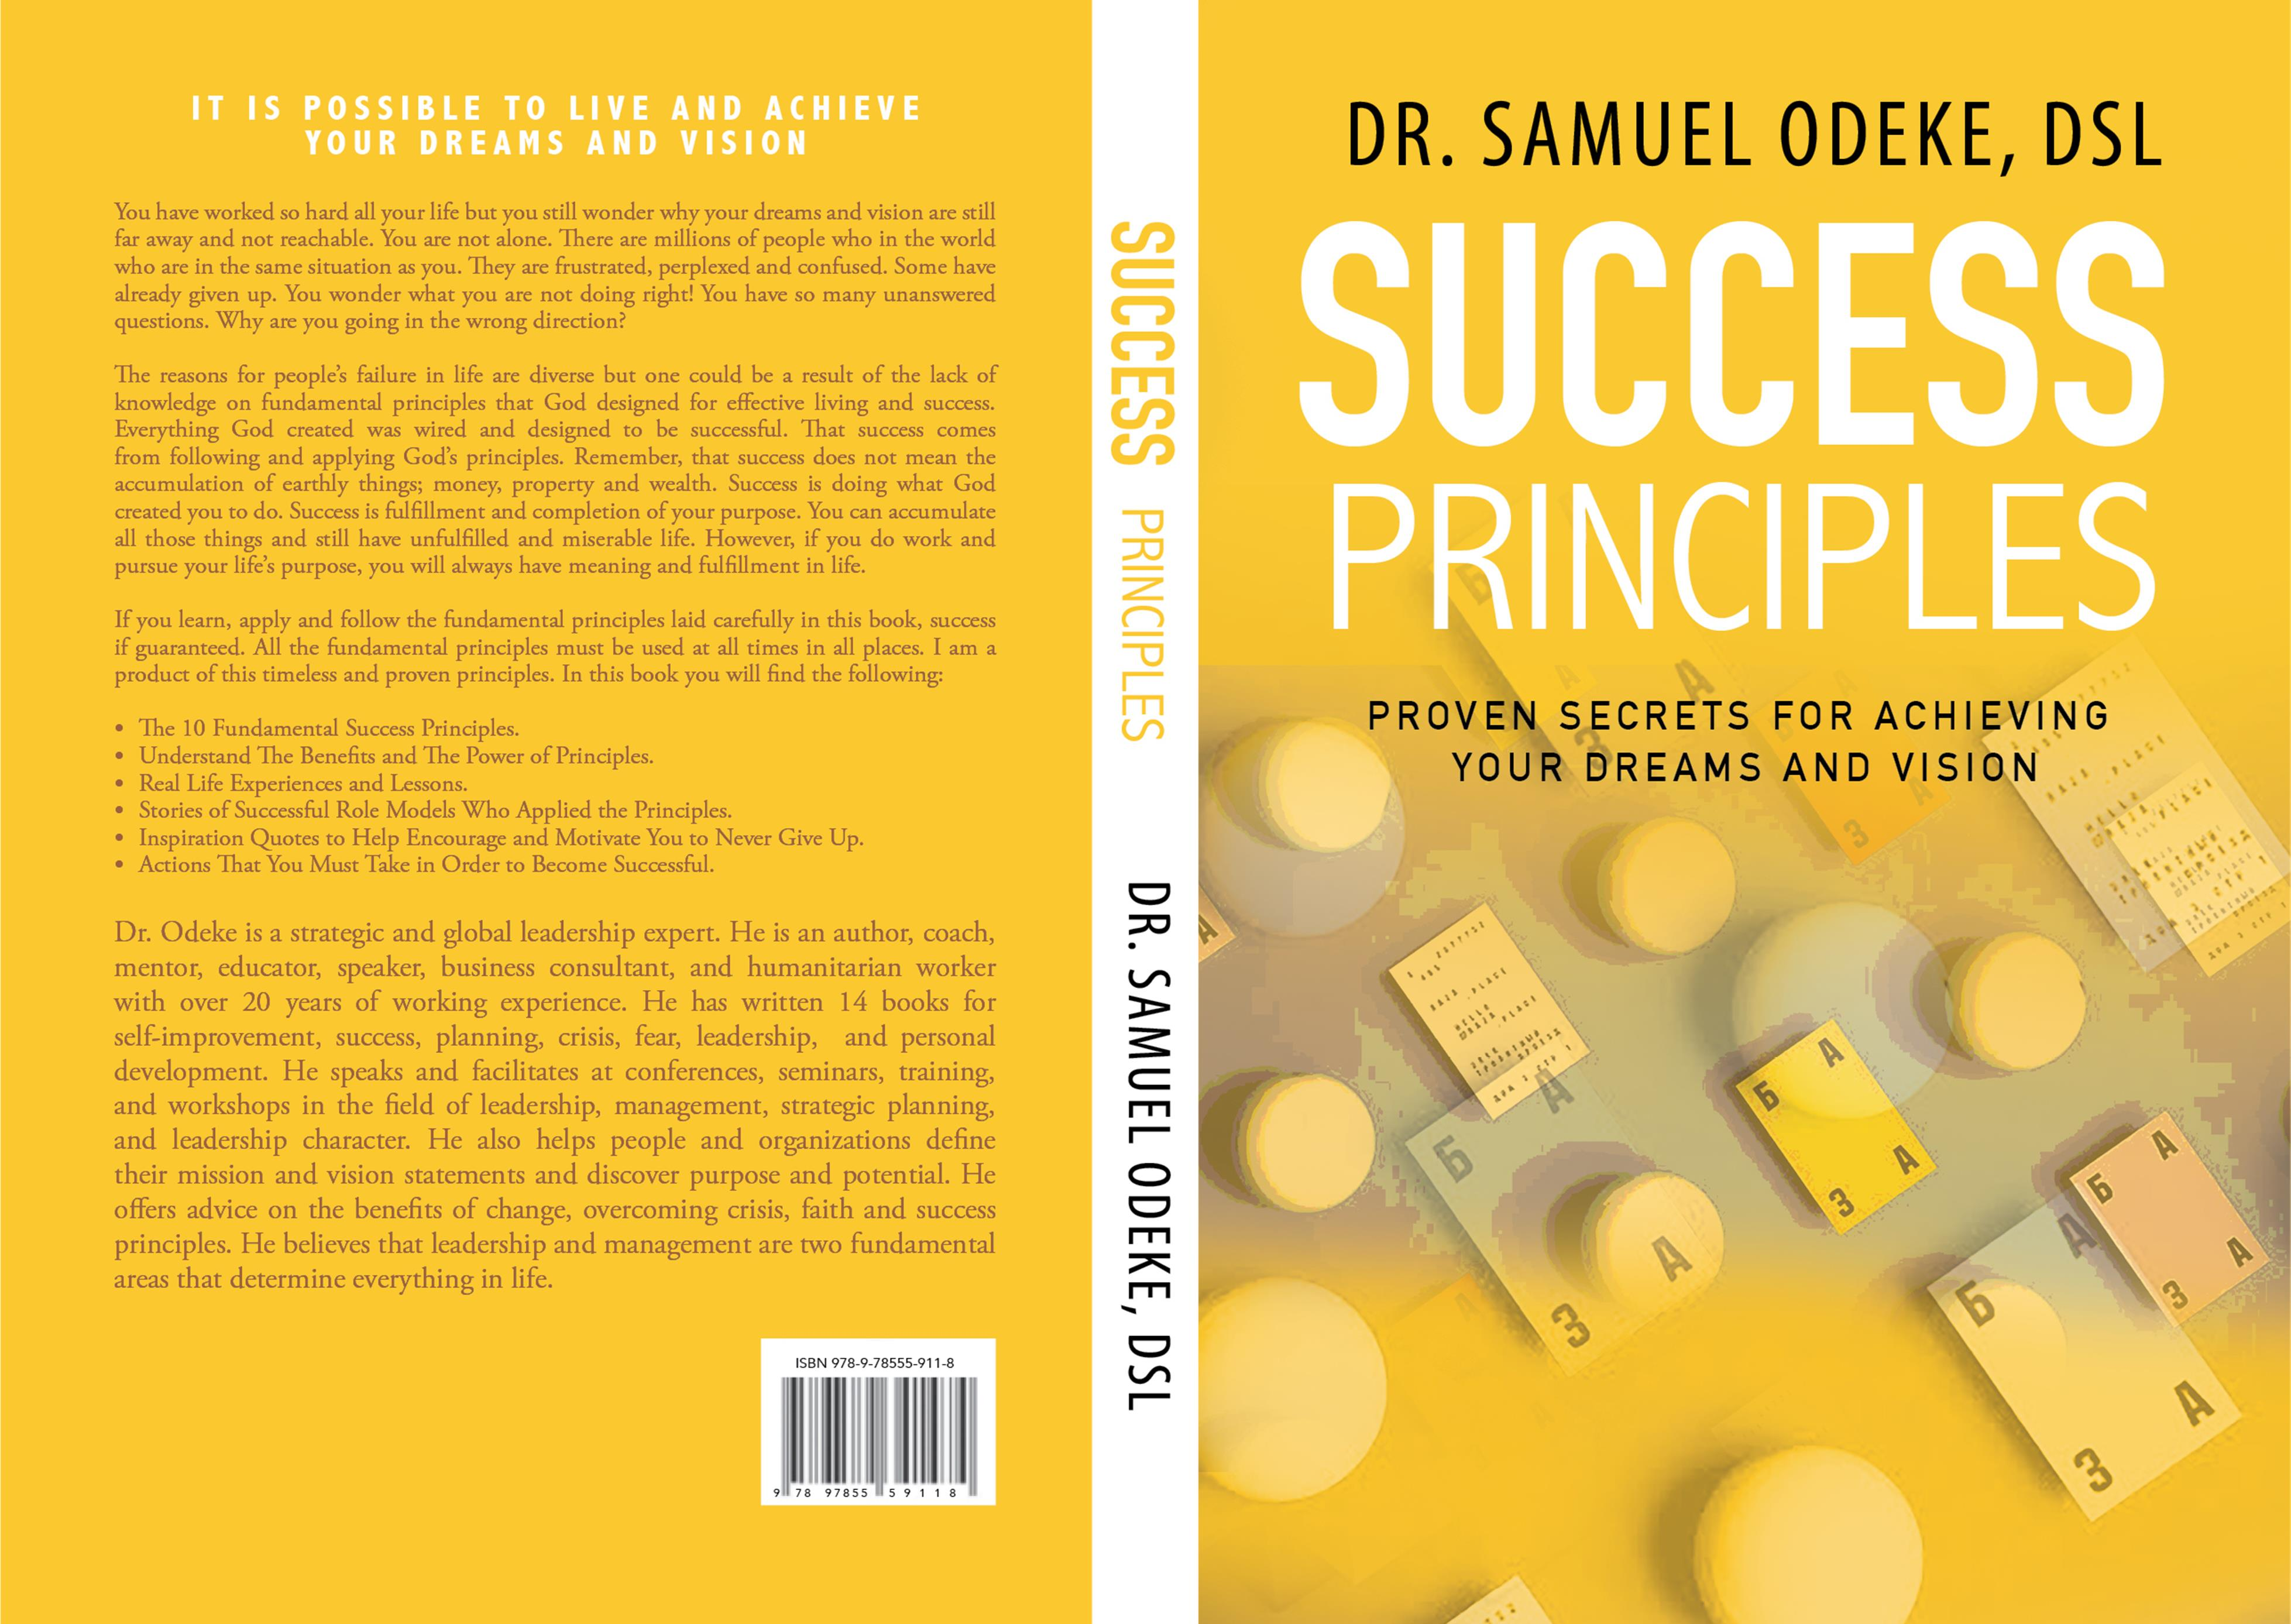 Success Principles: Proven Secrets for Achieving Your Dreams and Vision cover image